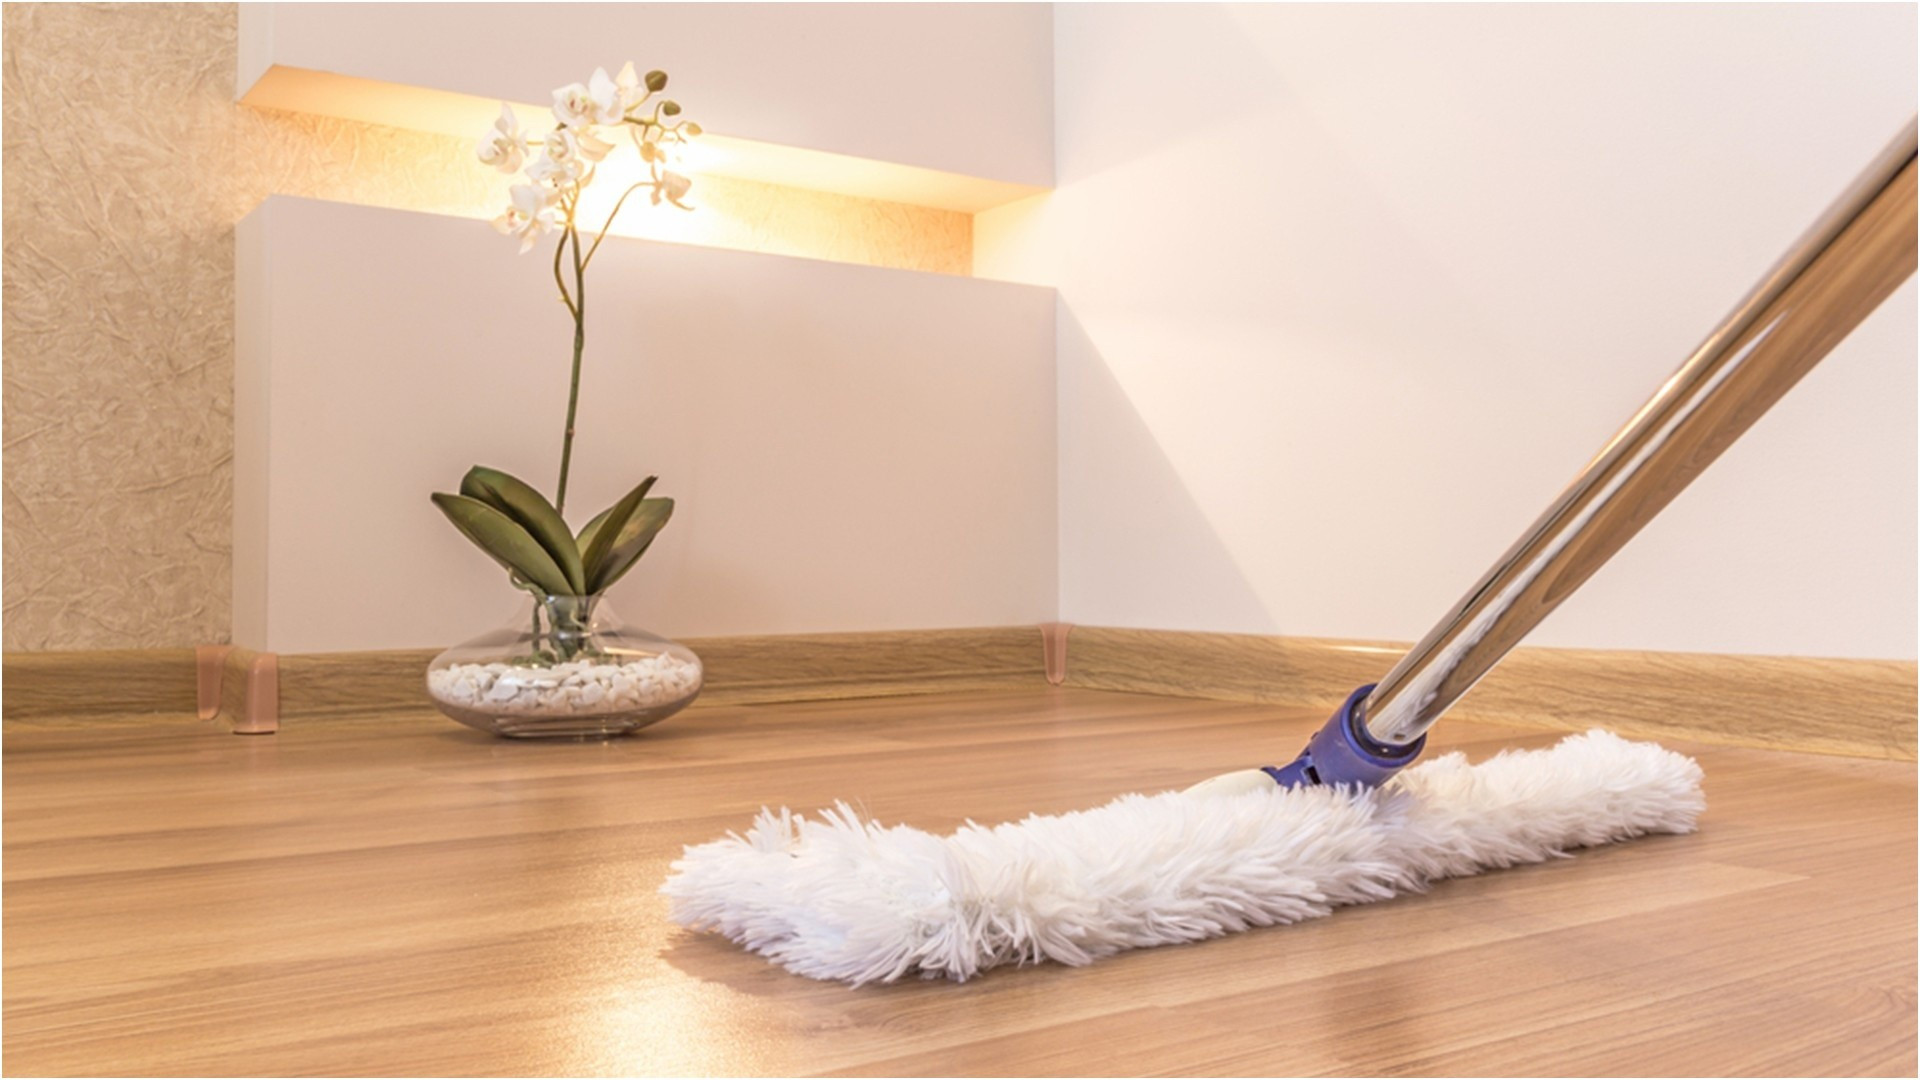 26 attractive Hardwood Floor Installation Nashville Tn 2021 free download hardwood floor installation nashville tn of 17 awesome what to use to clean hardwood floors image dizpos com intended for what to use to clean hardwood floors inspirational how much laminate